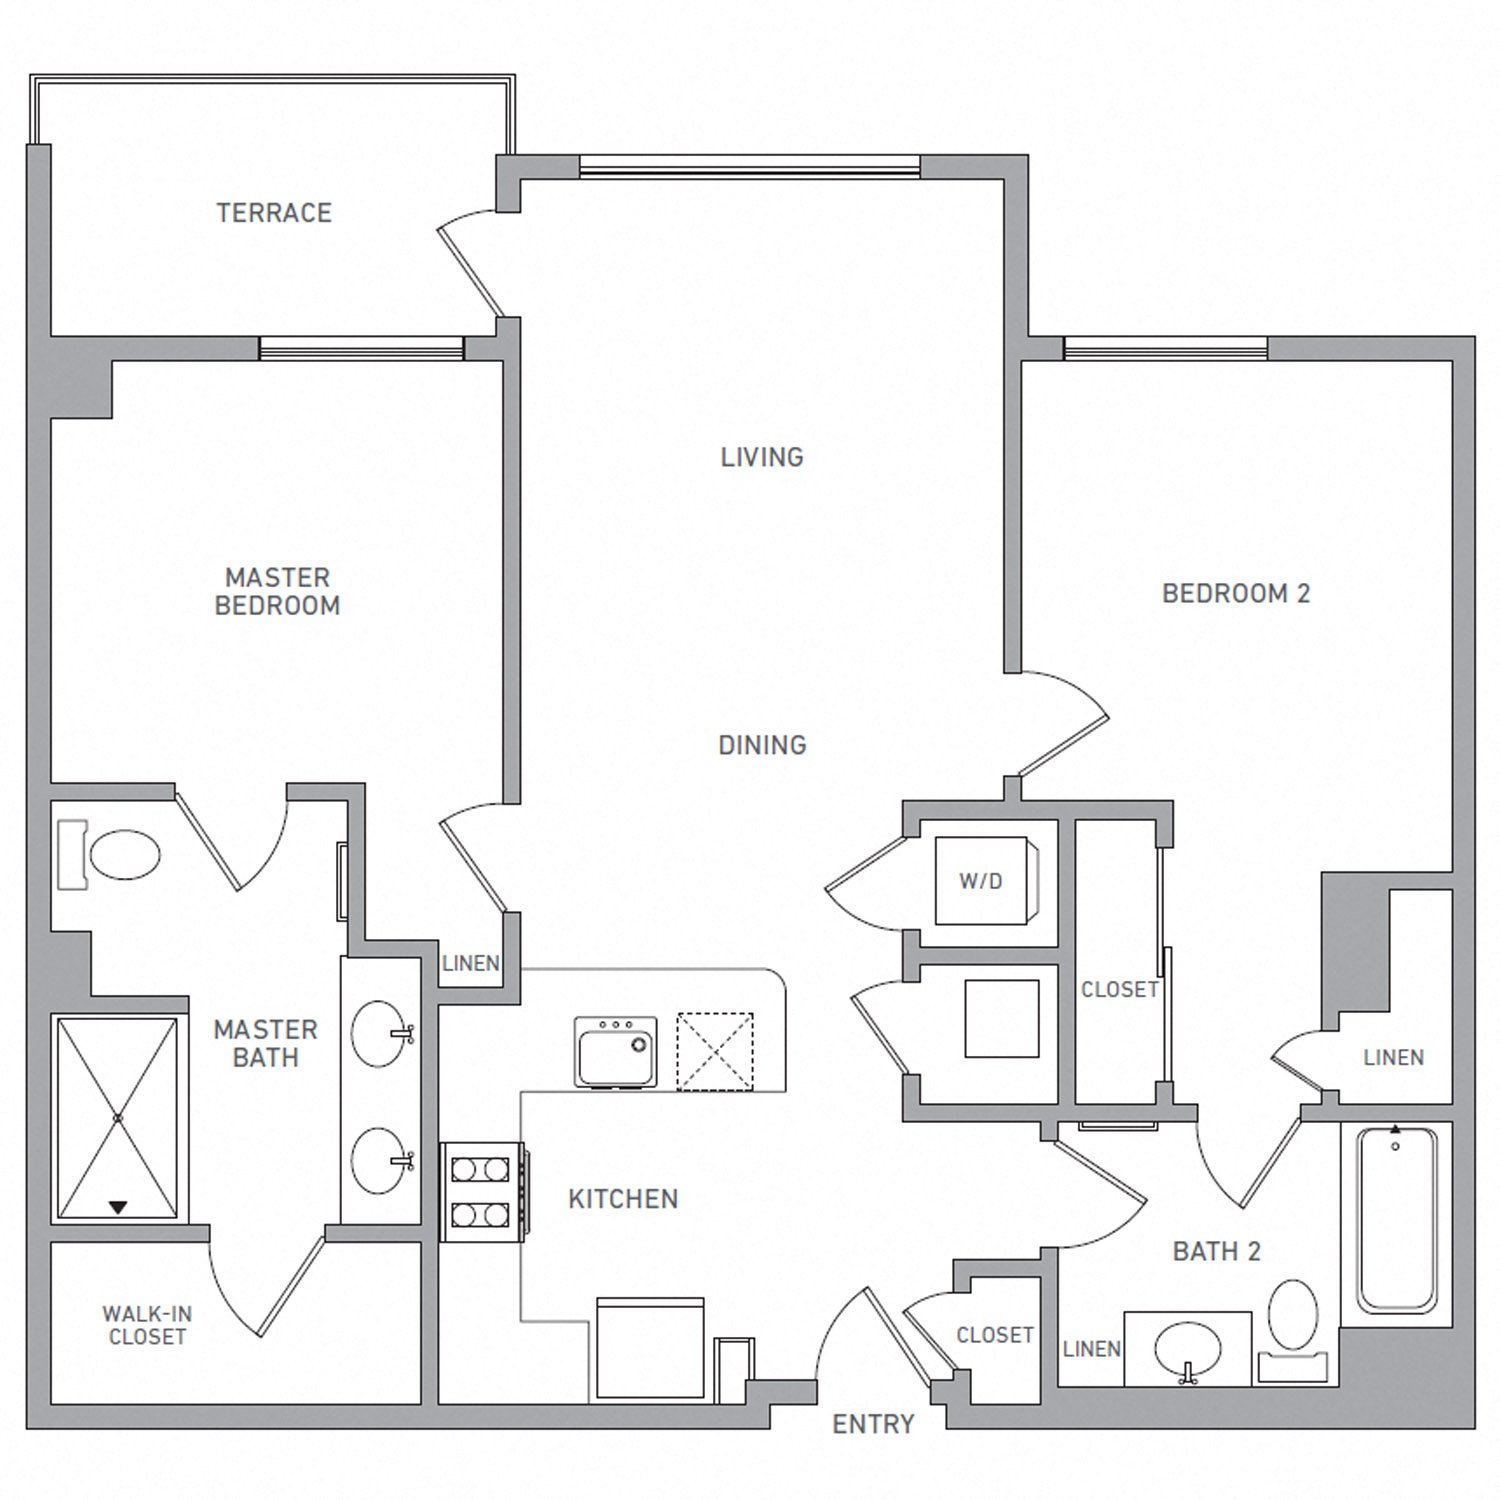 B Three B floor plan diagram. Two bedrooms, two bathrooms, an open kitchen and living area, a terrace, and a washer dryer.